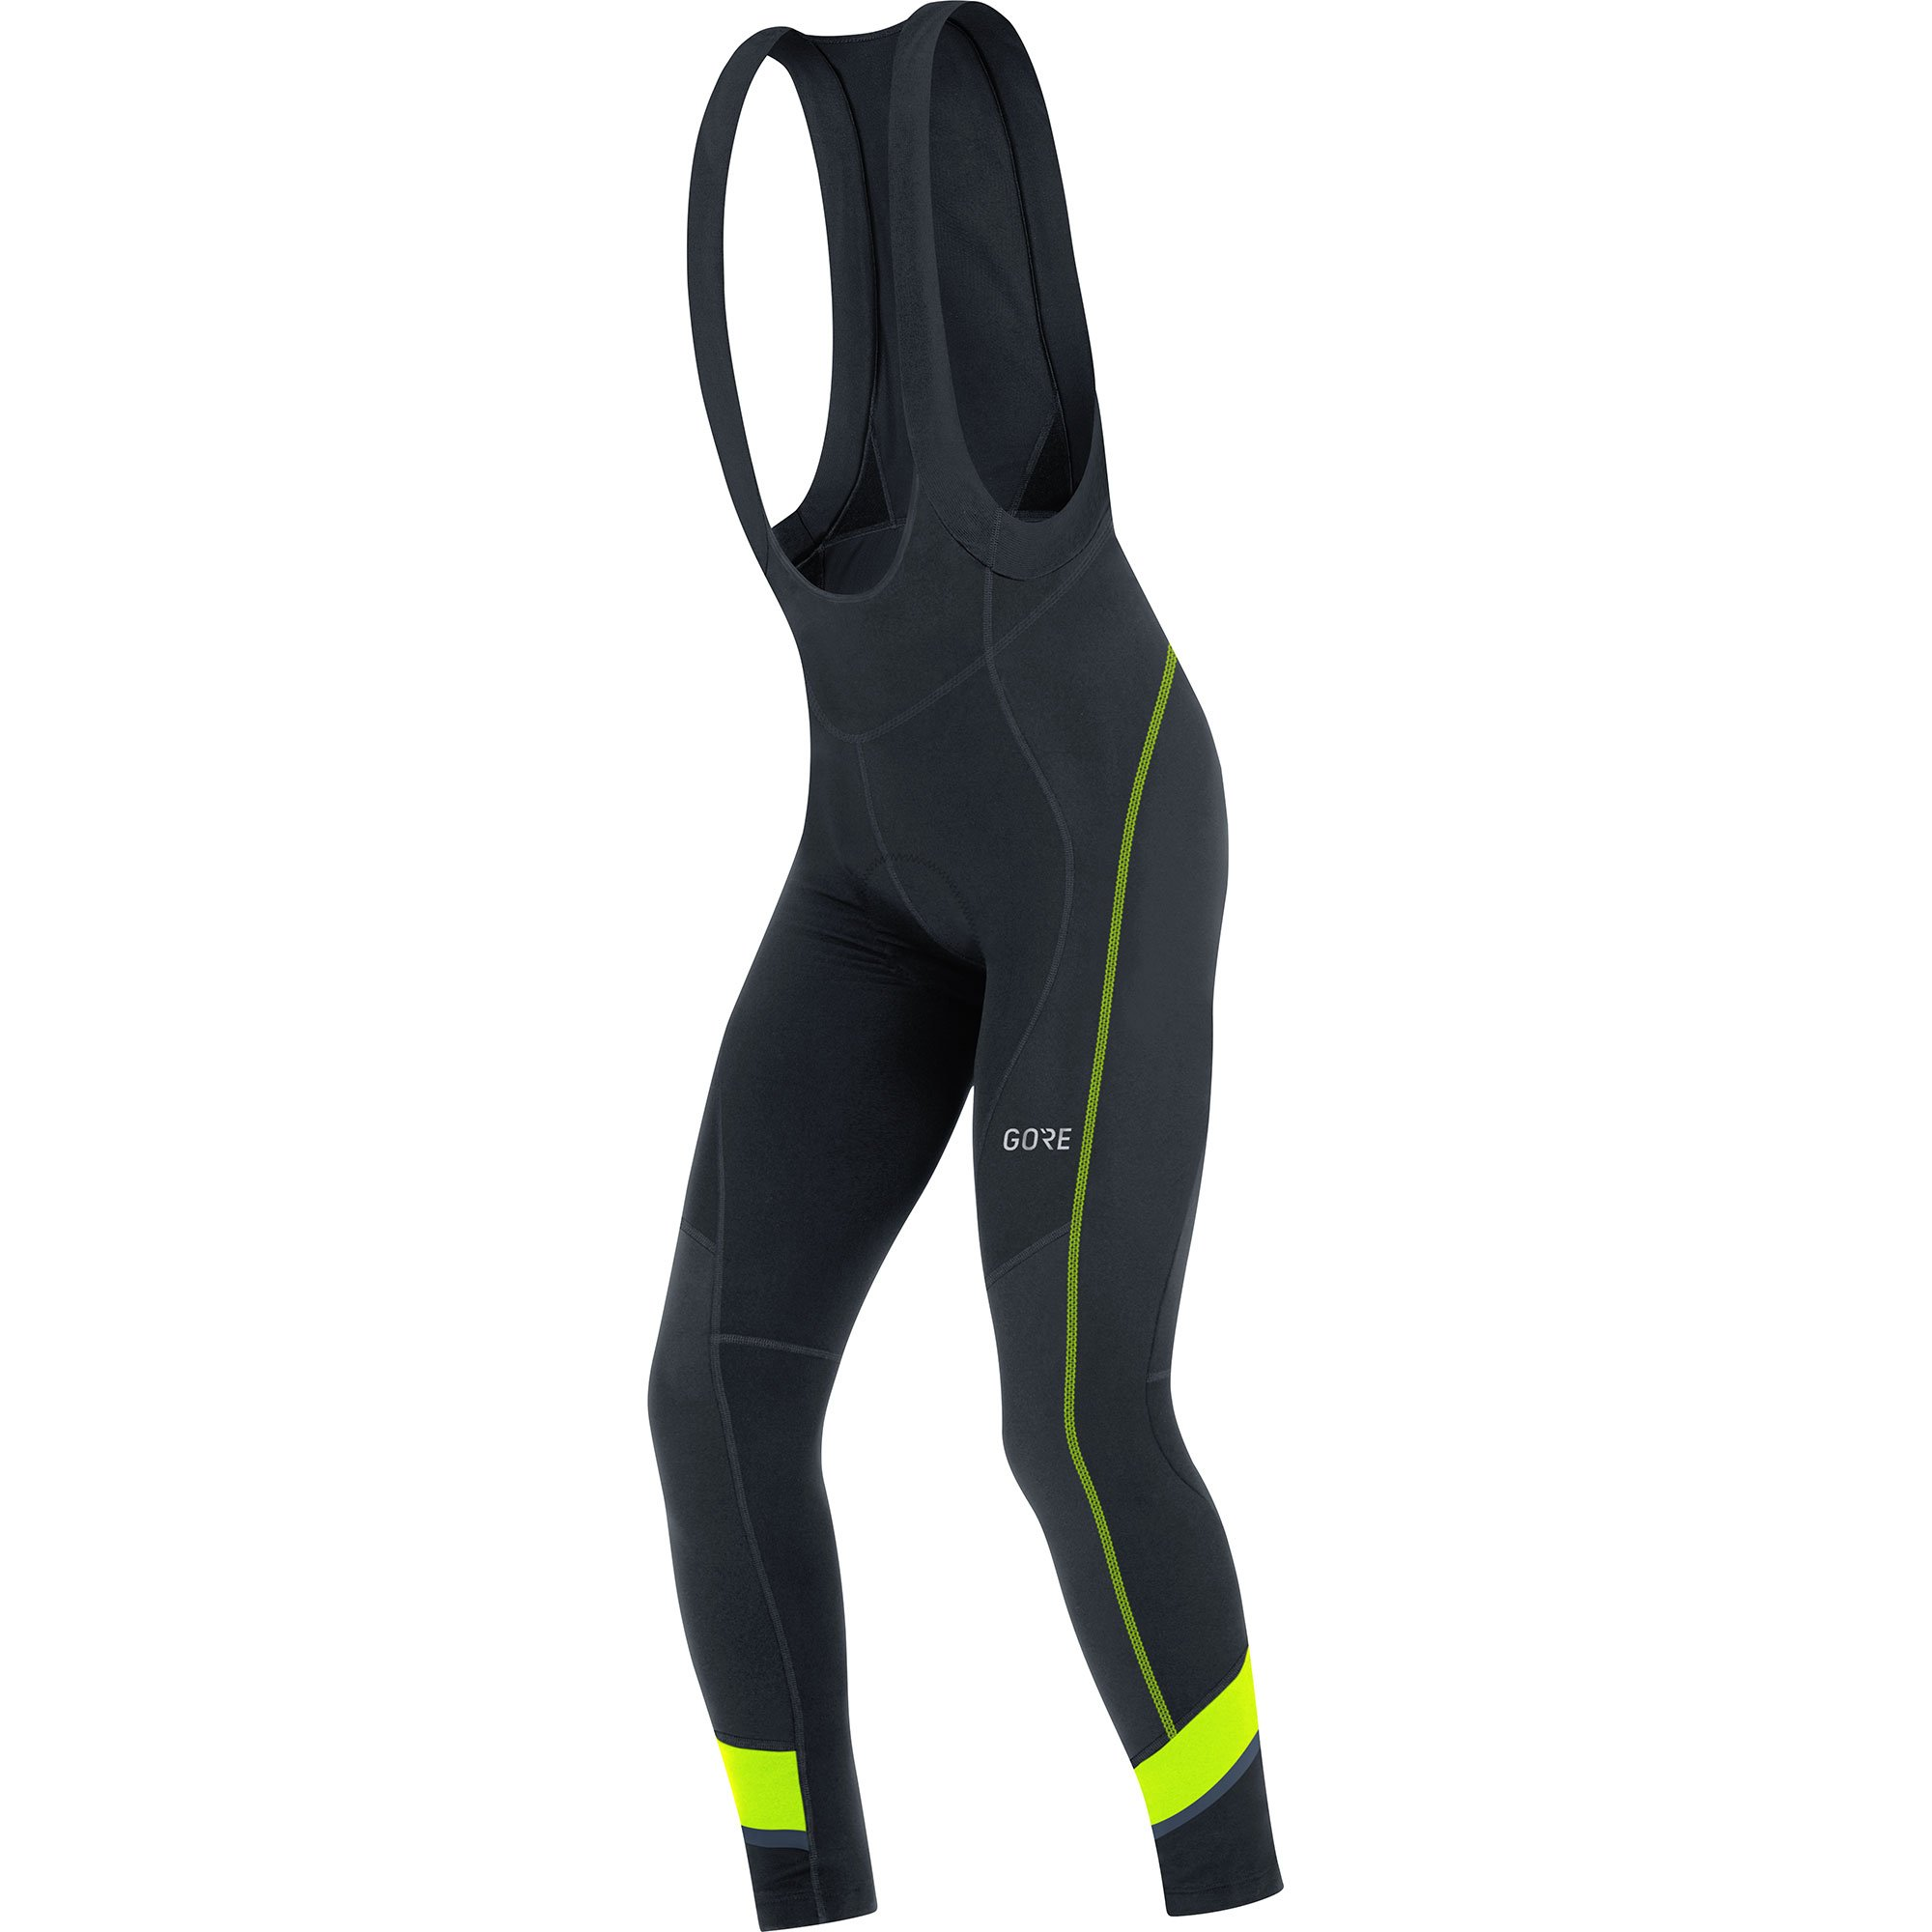 GORE WEAR Men's Breathable, Long Cycling bib Tights, with seat Insert, C5 Thermo Bib Tights+, M, Black/Neon-Yellow, 100365